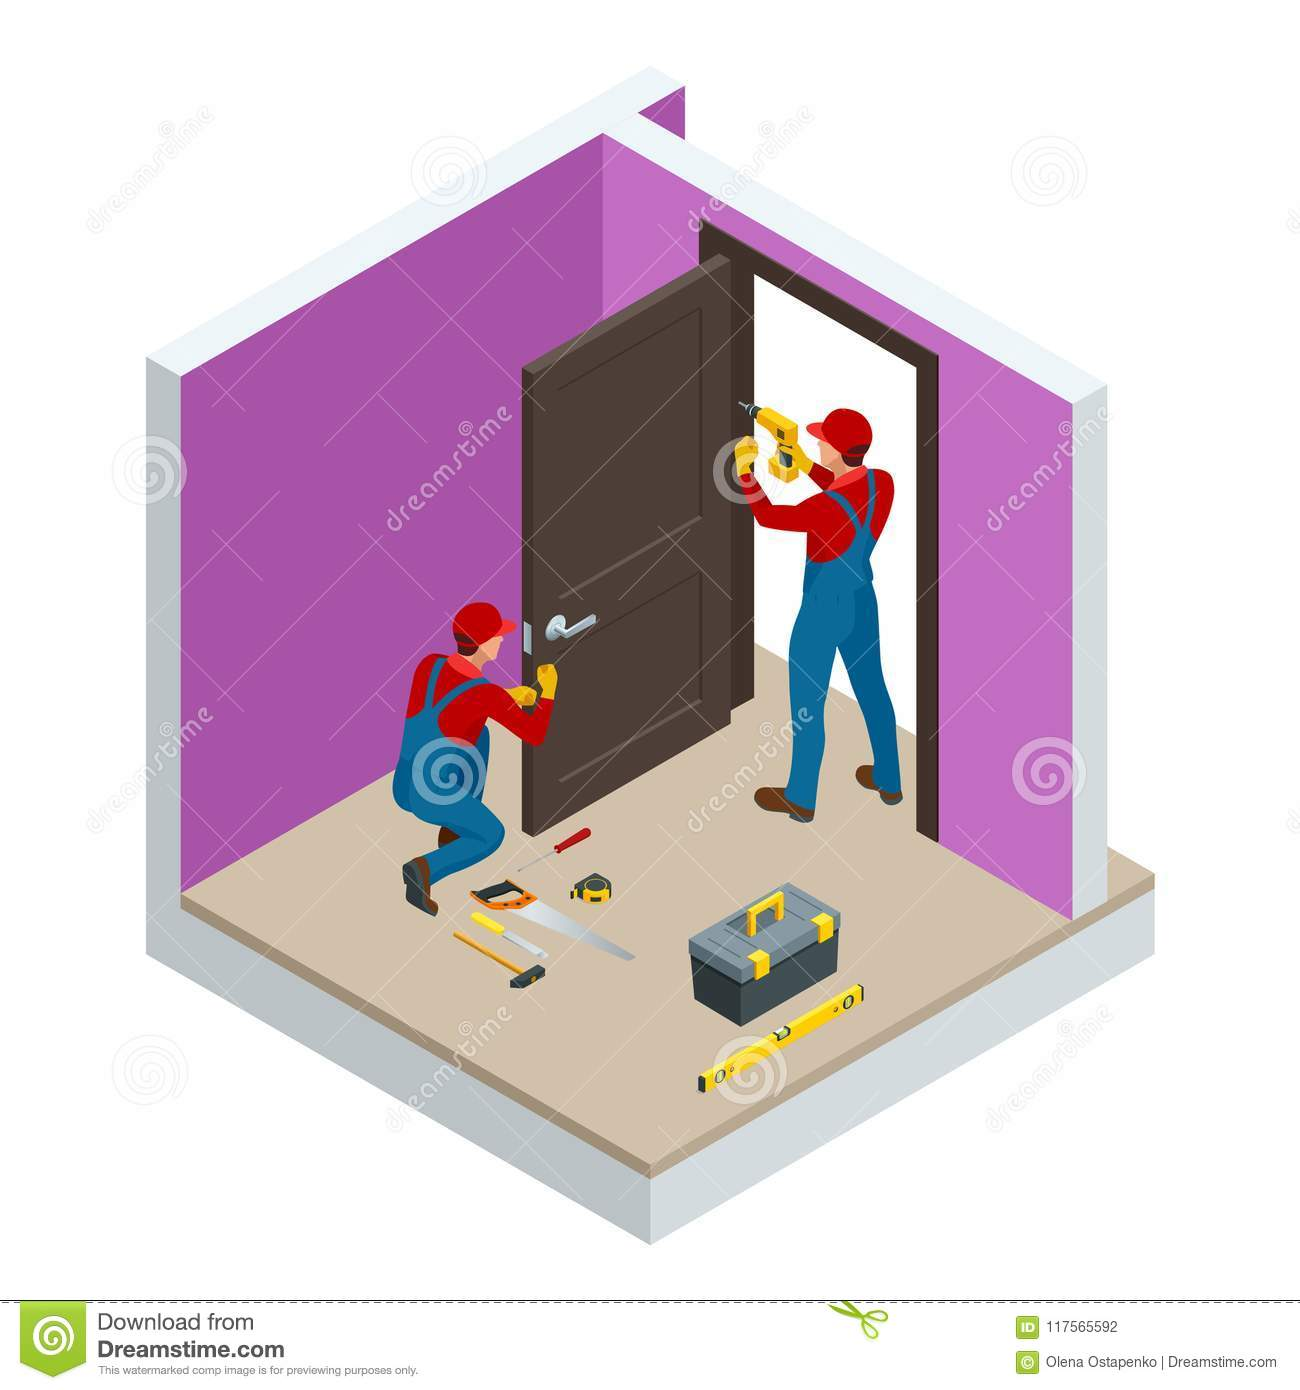 Isometric handymans installing a white door with an electric hand drill in a room. Construction building industry, new